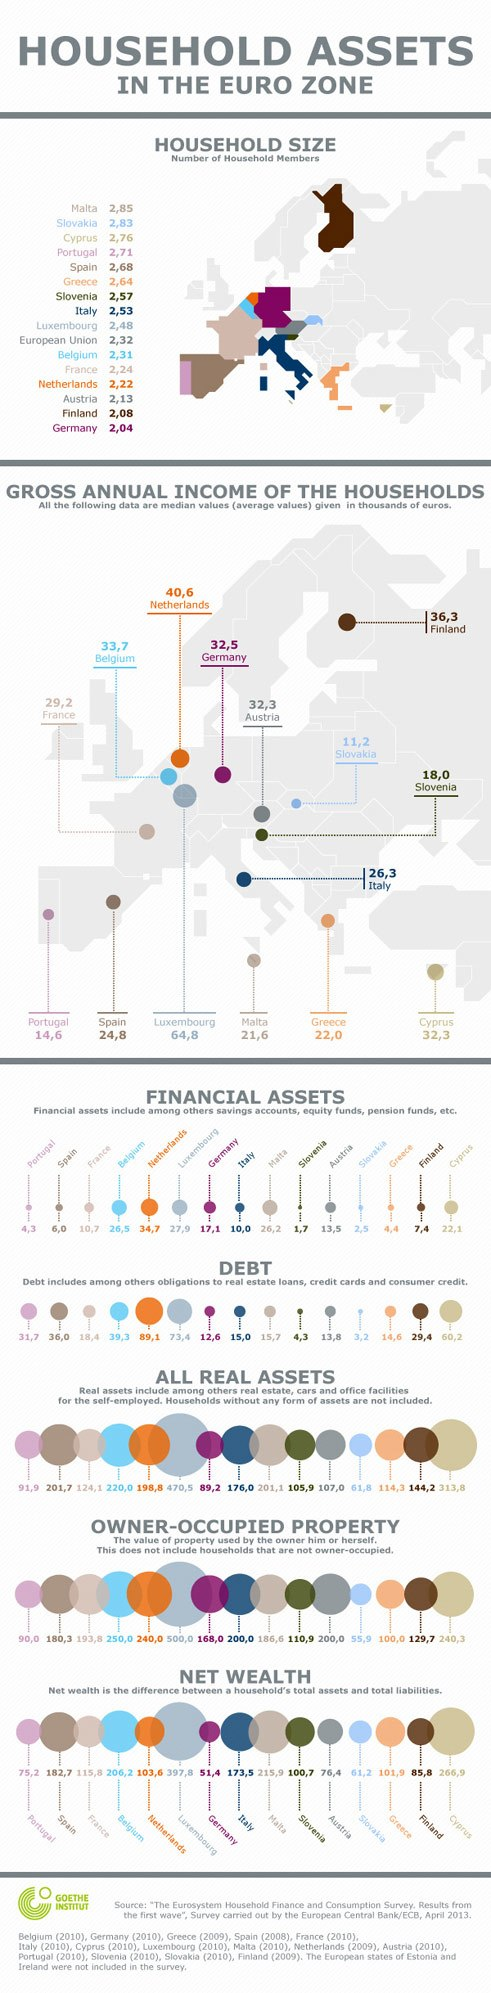 Household Assets in the Euro Zone